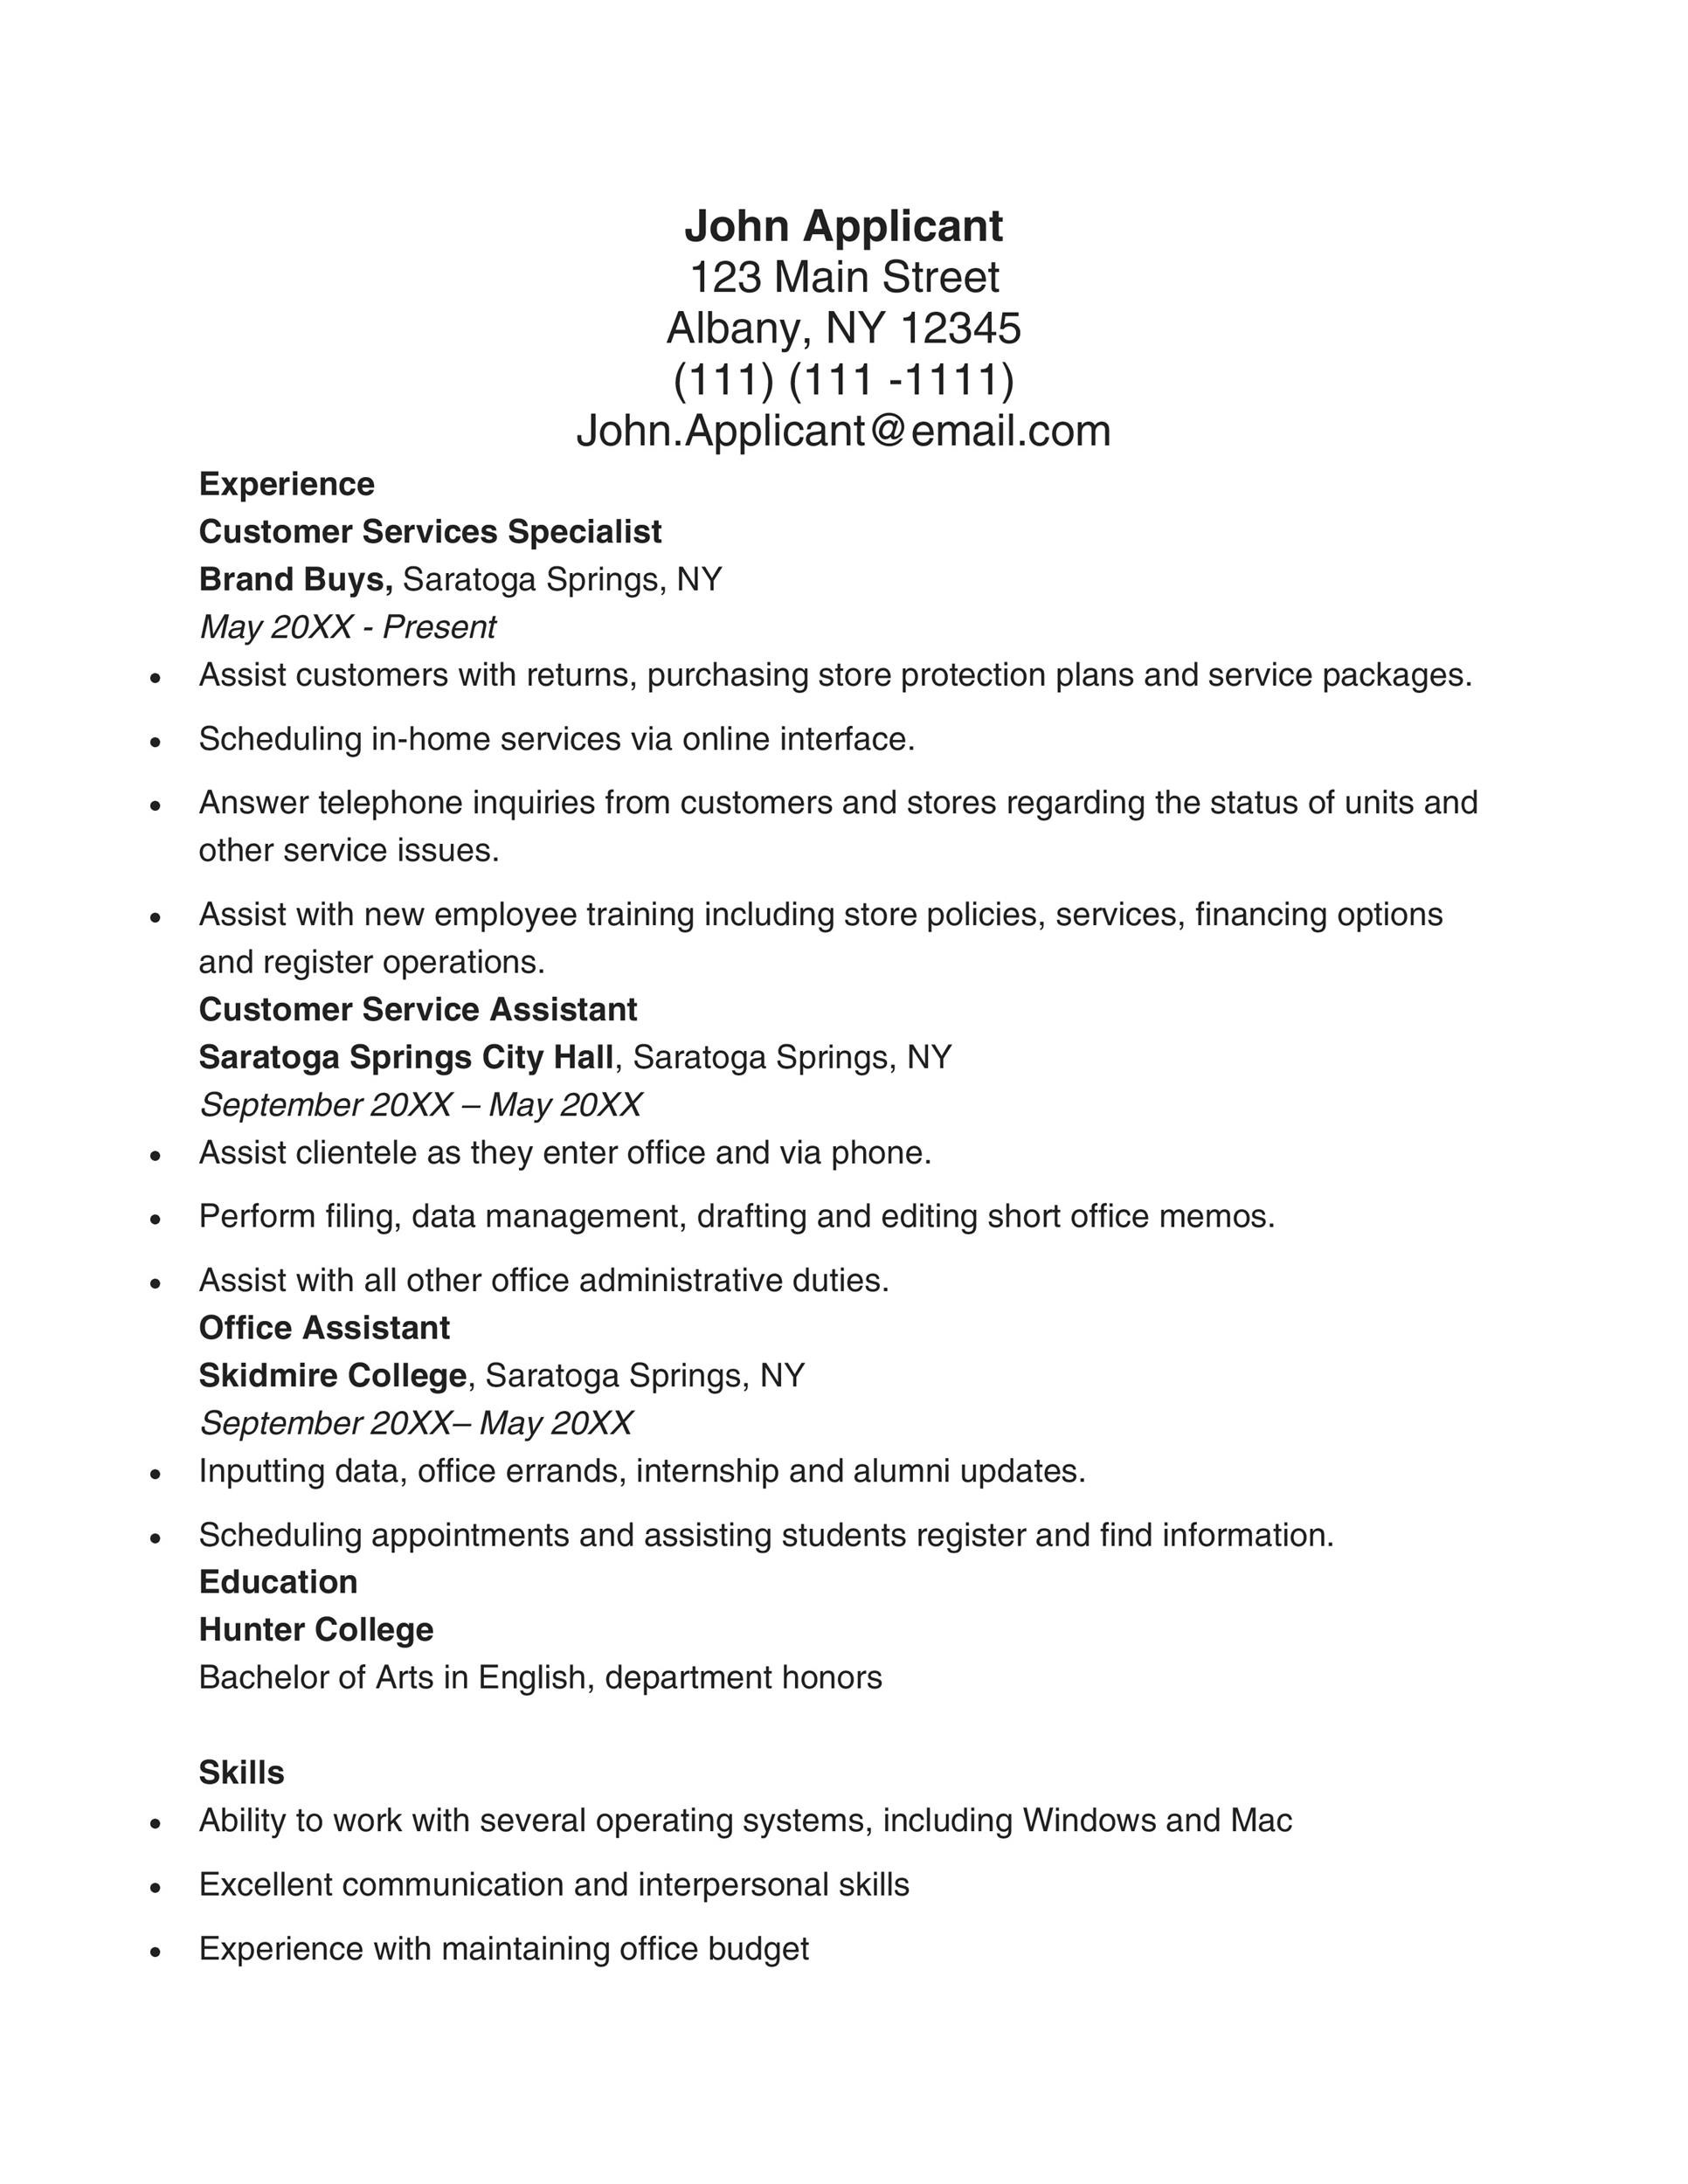 Multiple Intelligences SelfAssessment  Edutopia Window Resume